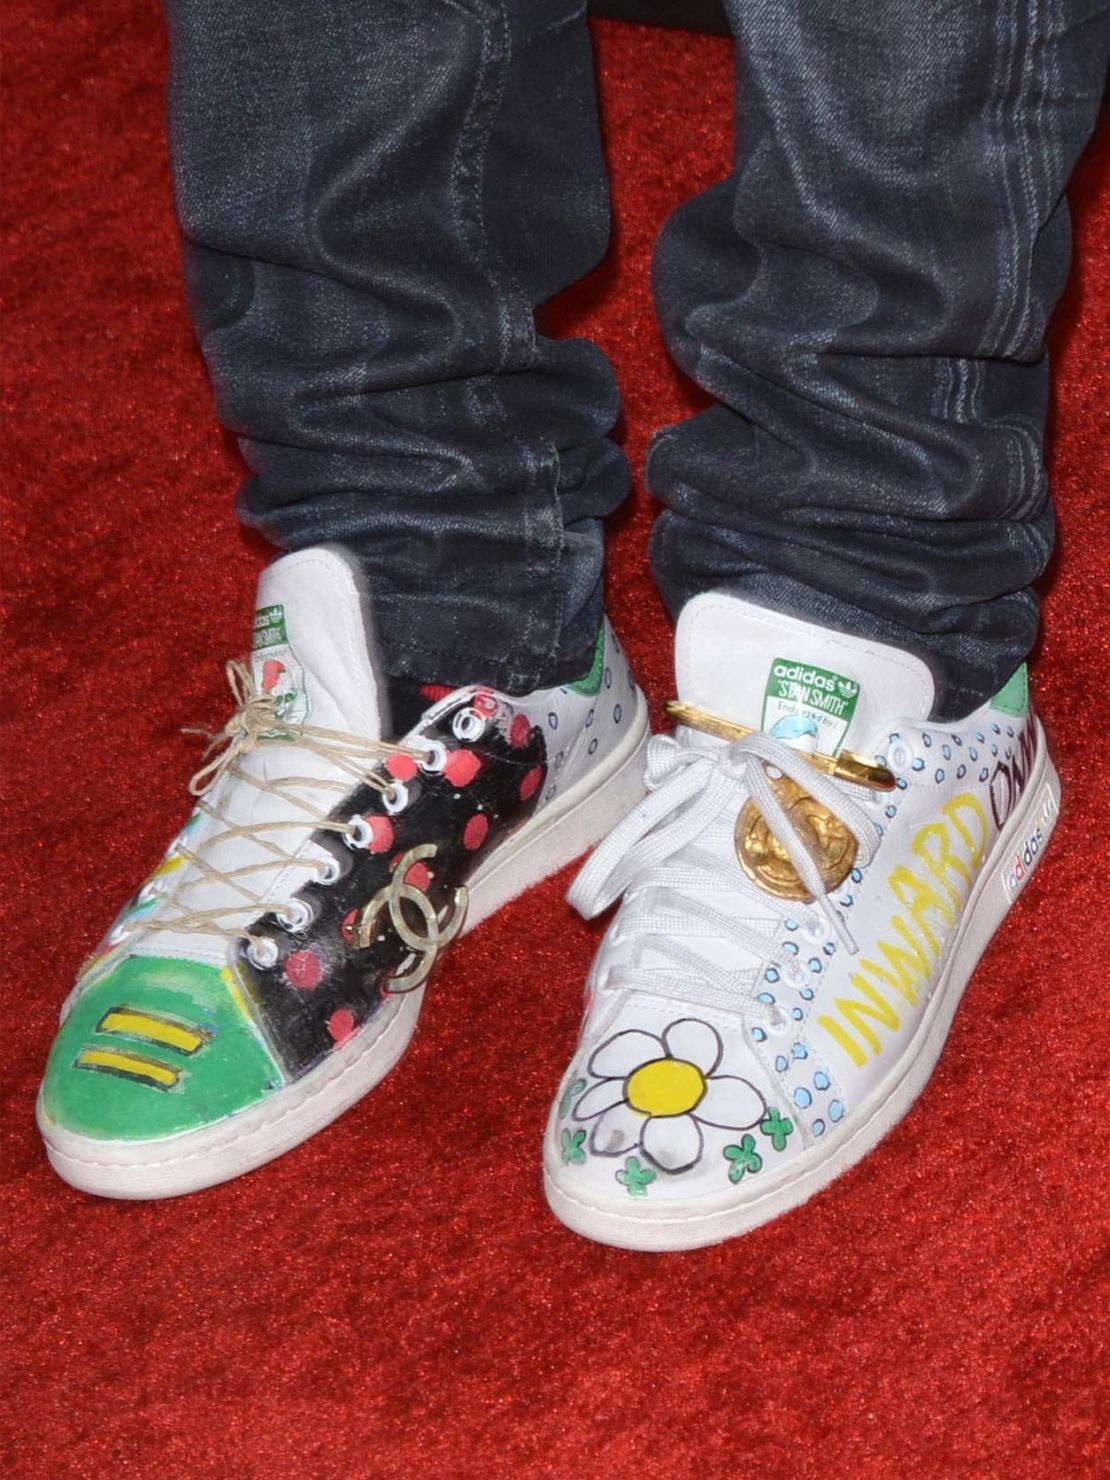 Limited edition Stan Smith shoes